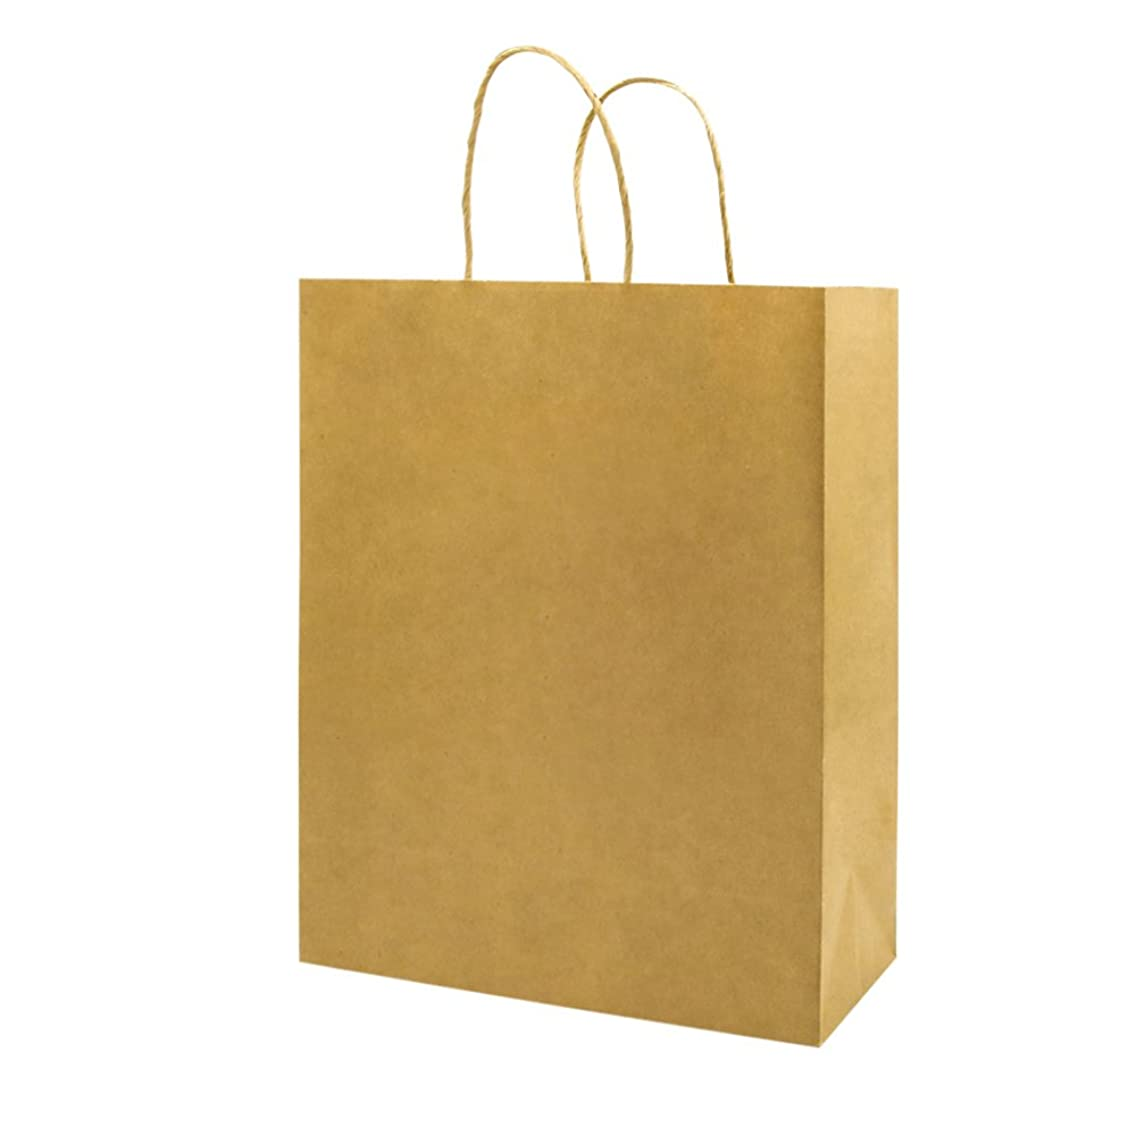 Thick Paper 10x5x13 Inch 25 Pack,Bagmad Large Kraft Paper Shopping Bags with Handles Bulk,Gift Natural Party Retail Craft Brown Mechandise Take Out Bags (25Pcs Count)